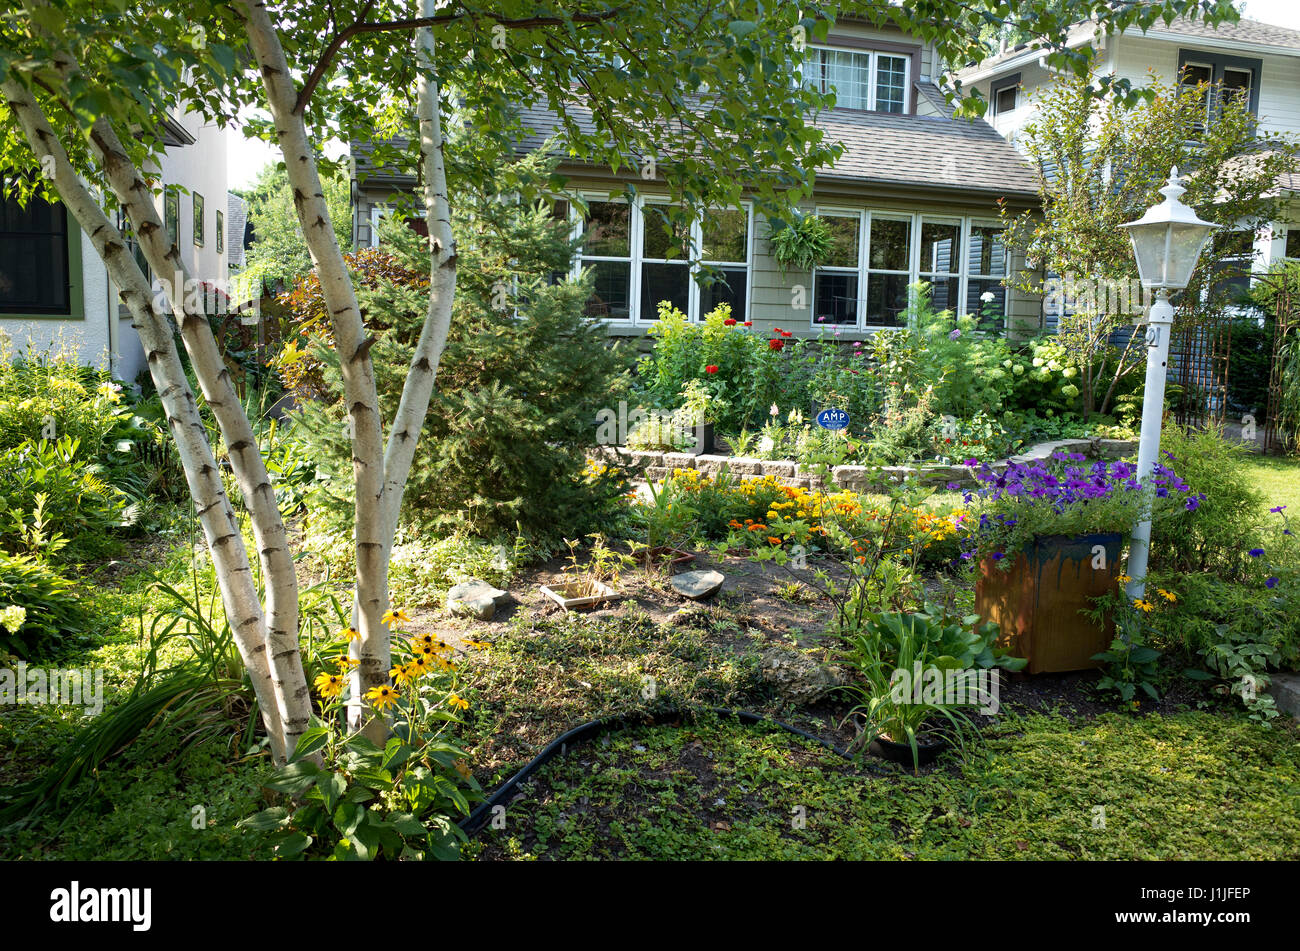 Home front garden with flowers framed with birch trees. St Paul Minnesota MN USA - Stock Image